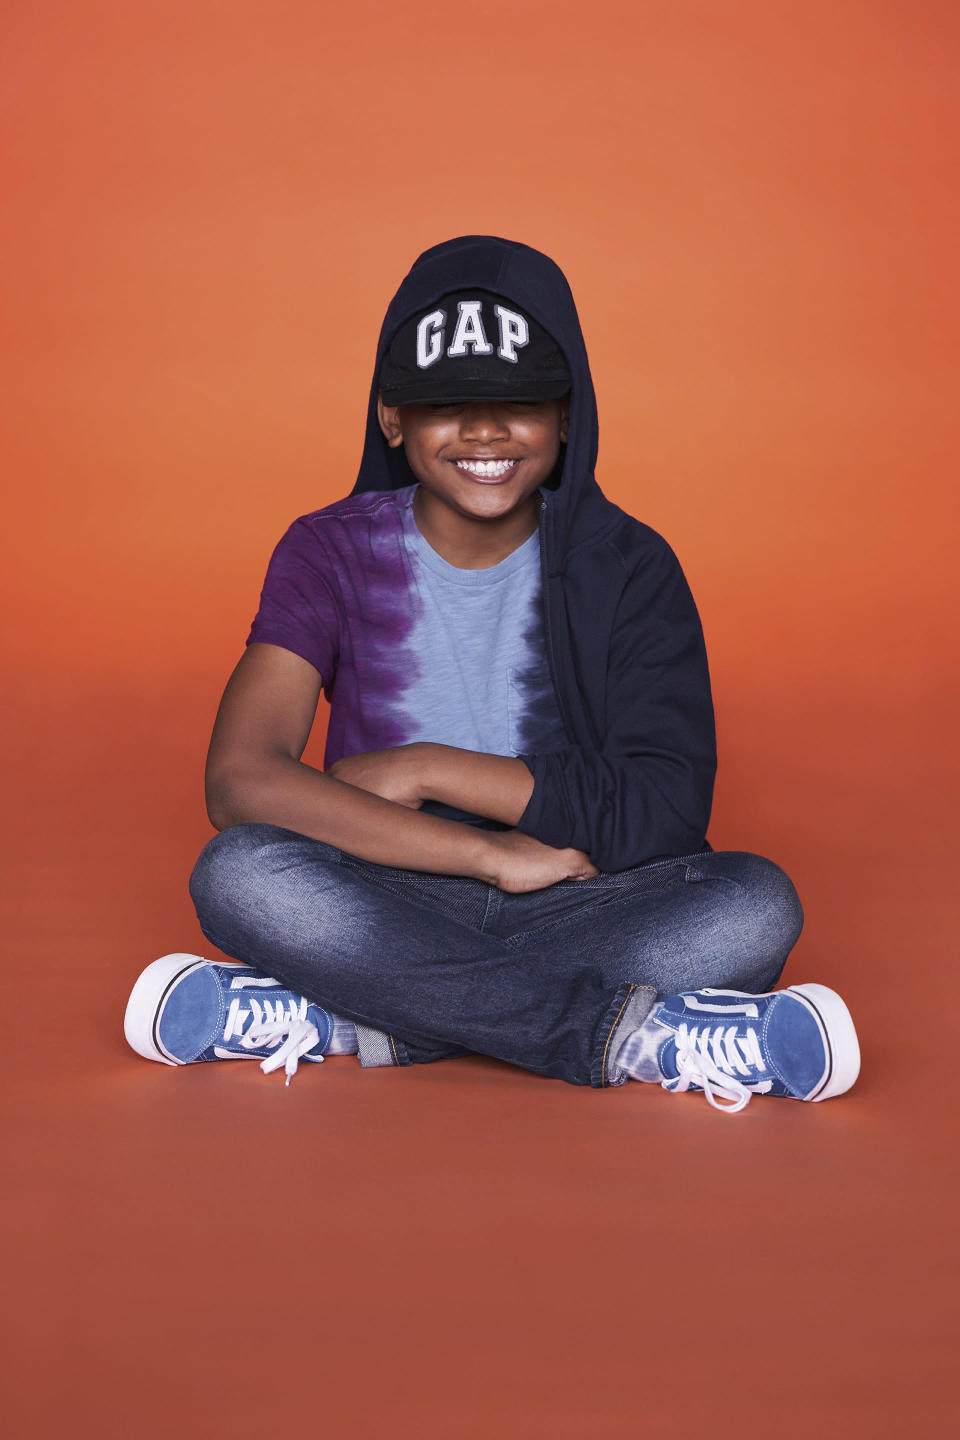 An image from the new GapKids campaign. - Credit: courtesy shot.